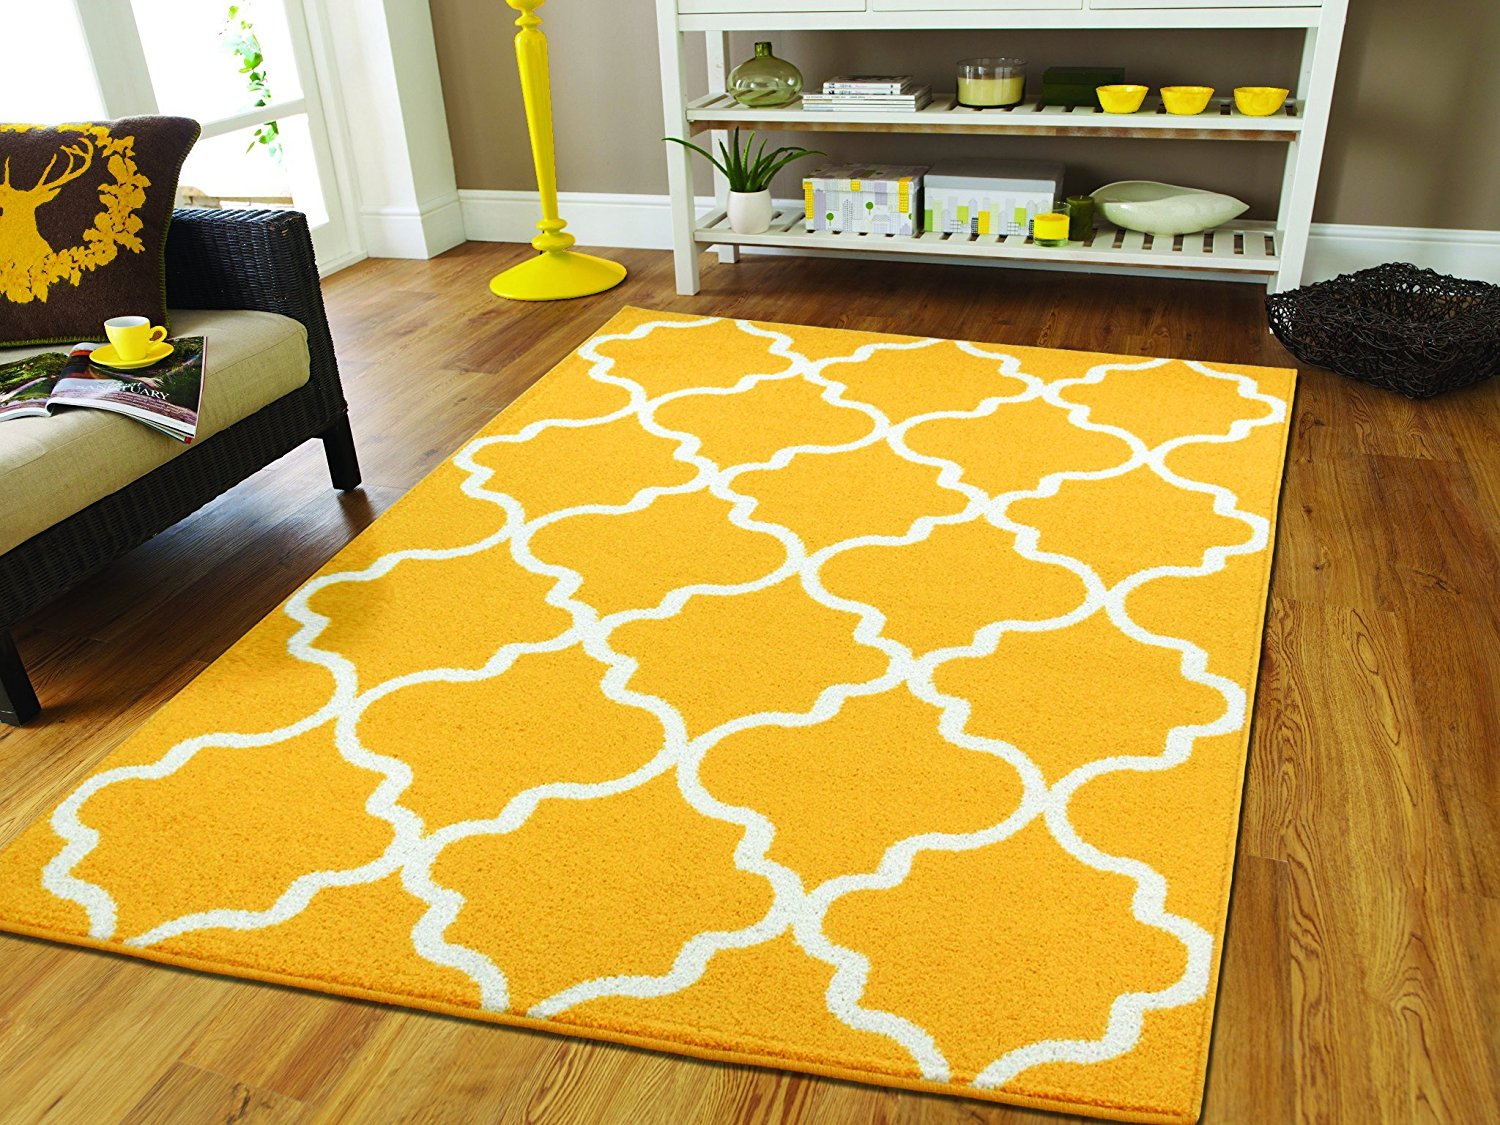 Superb Yellow Area Rugs On Clearance 5x8 Bedroom Rug 5x7 Persian Rugs For Living Room  Rug On Clearance